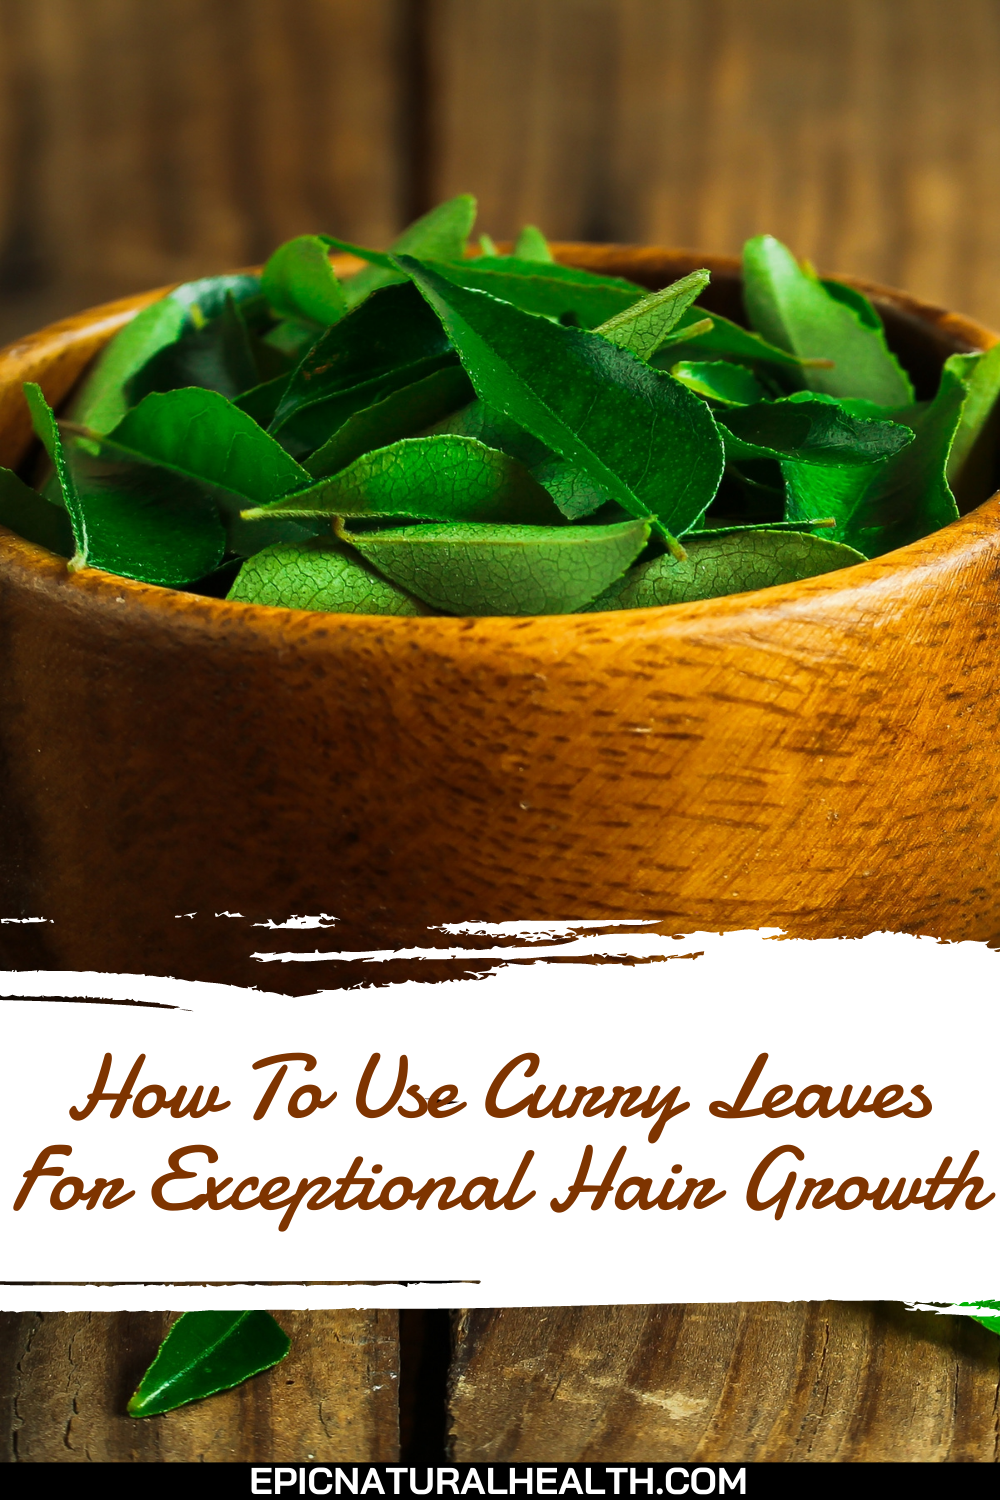 How to use curry leaves for exceptional hair growth